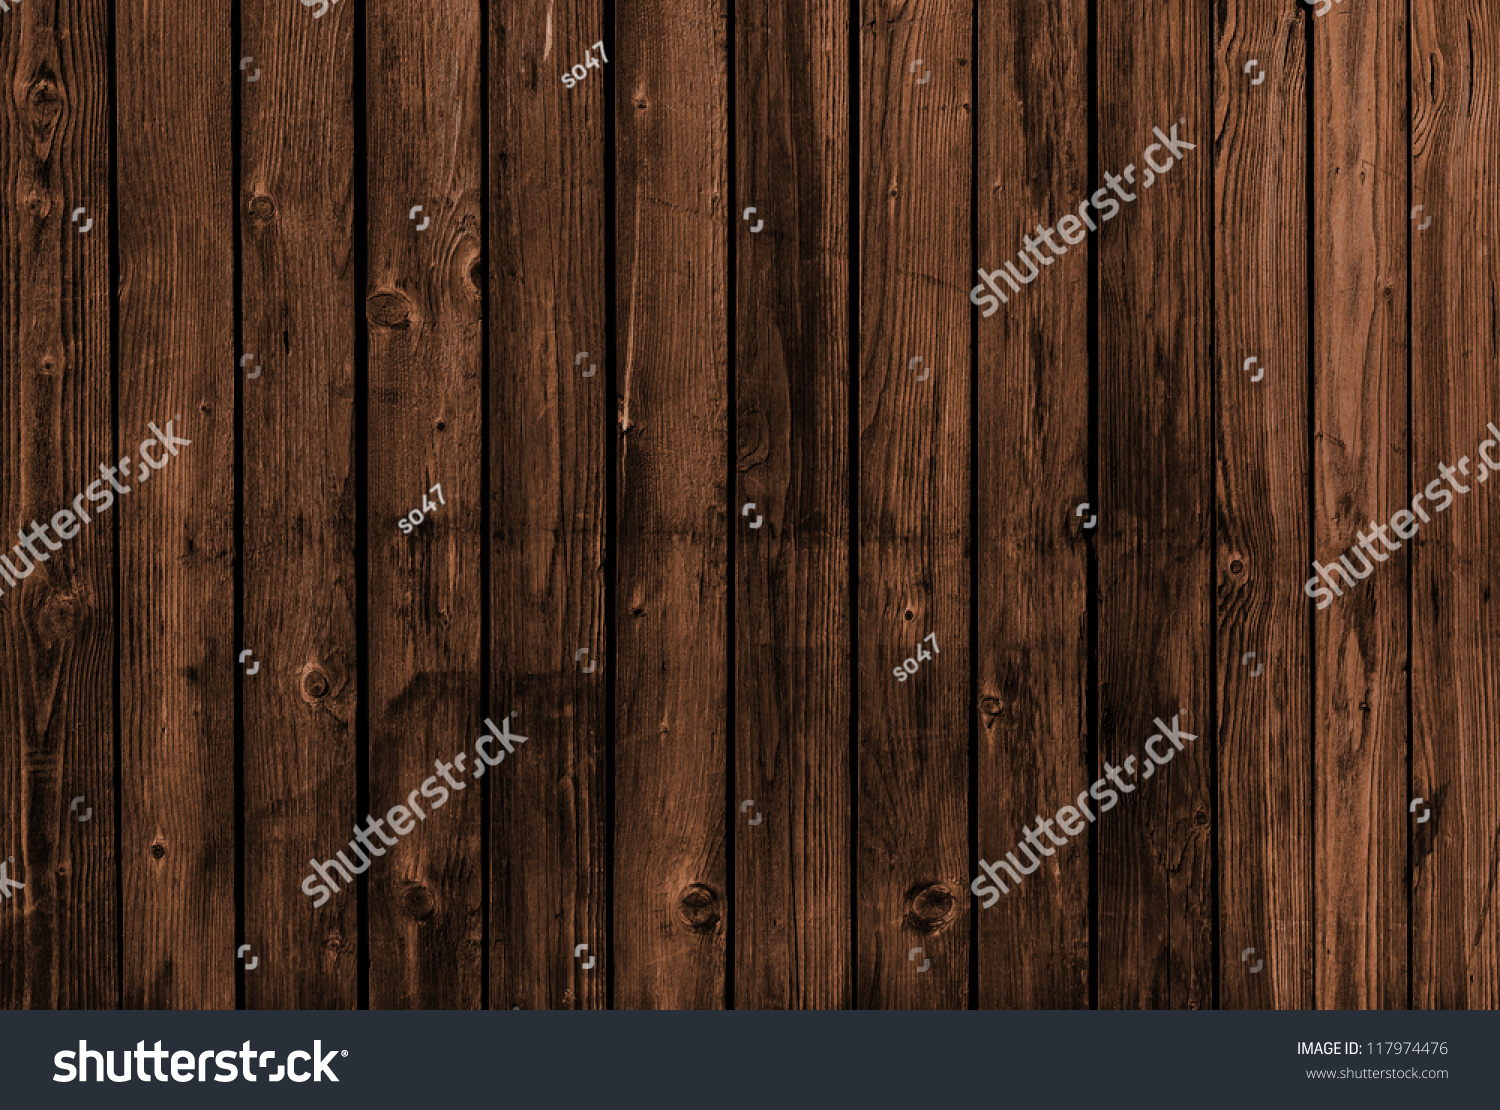 holzwand stock photo 117974476 shutterstock. Black Bedroom Furniture Sets. Home Design Ideas